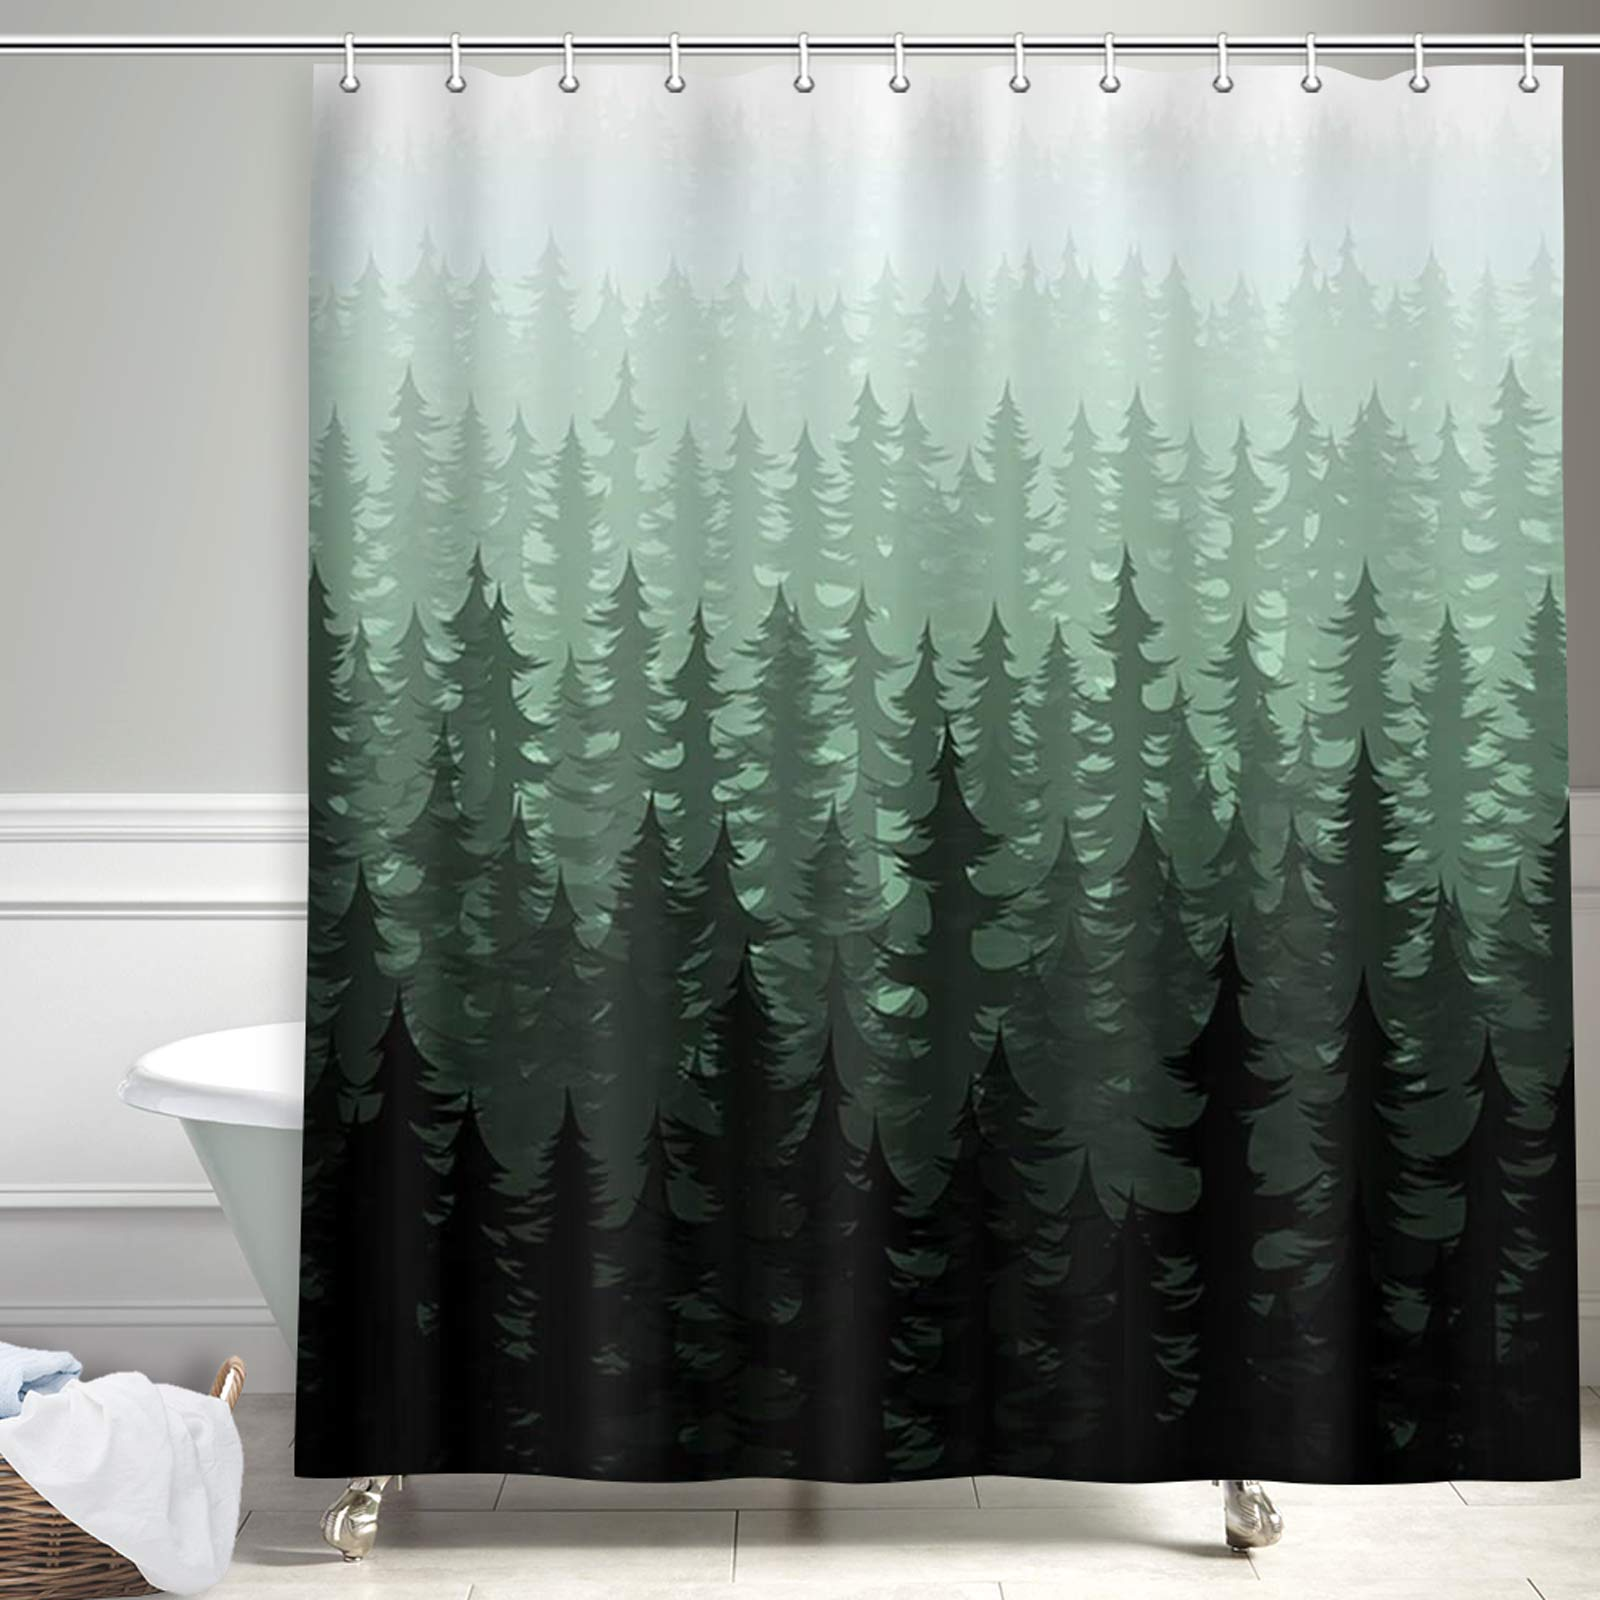 Mua Nymb Rustic Nature Forest Shower Curtain Watercolor Pine Trees Farmhouse Shower Curtains For Bathroom Fantasy Fog Woodland Polyester Fabric Shower Curtain Green Shower Curtain Hooks Includ 69x70in Tren Amazon Má»¹ Chinh Hang